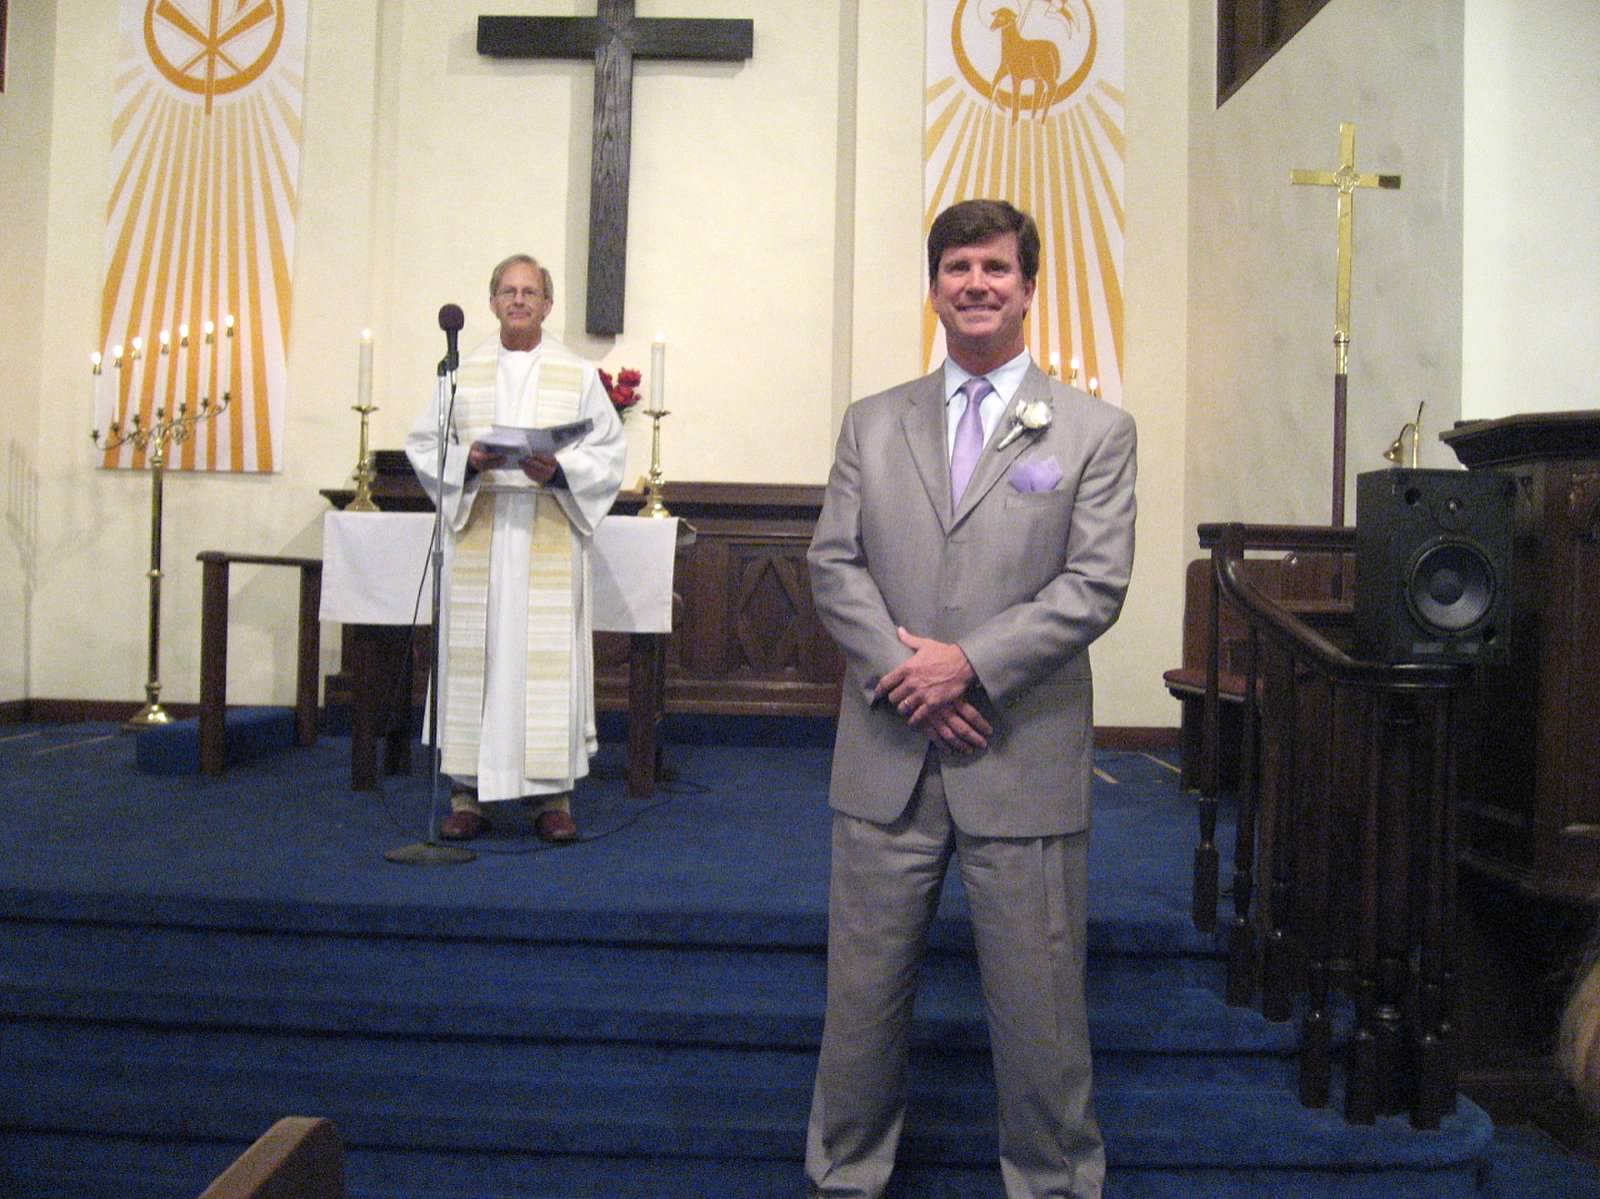 Here is my dad in his silver suit anxiously awaiting his bride. The ceremony took place at La Jolla Lutheran Church.